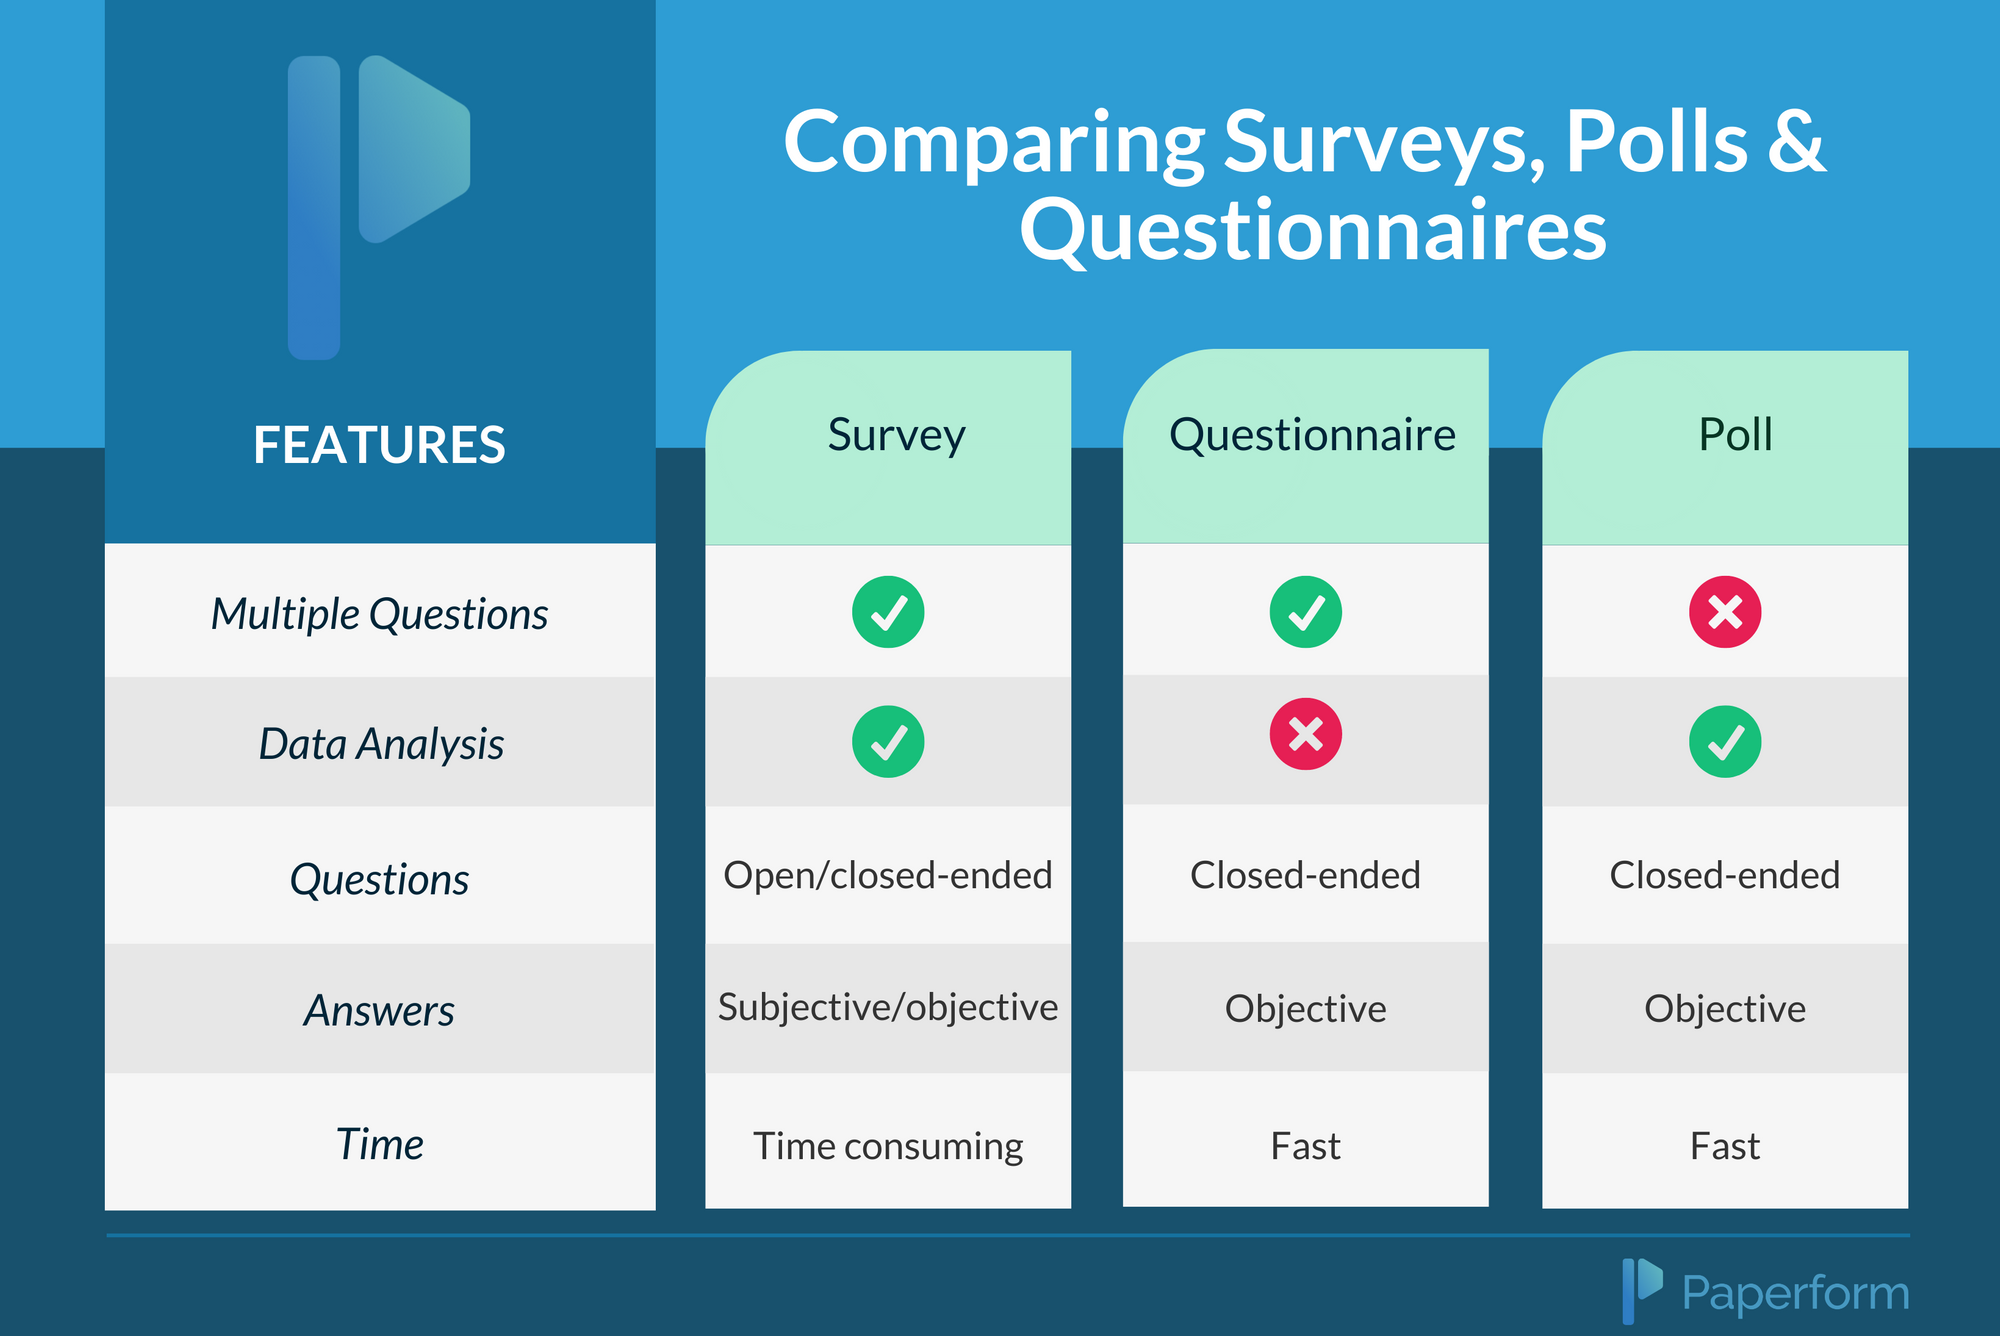 A table comparing the differences between surveys, polls and questionnaires